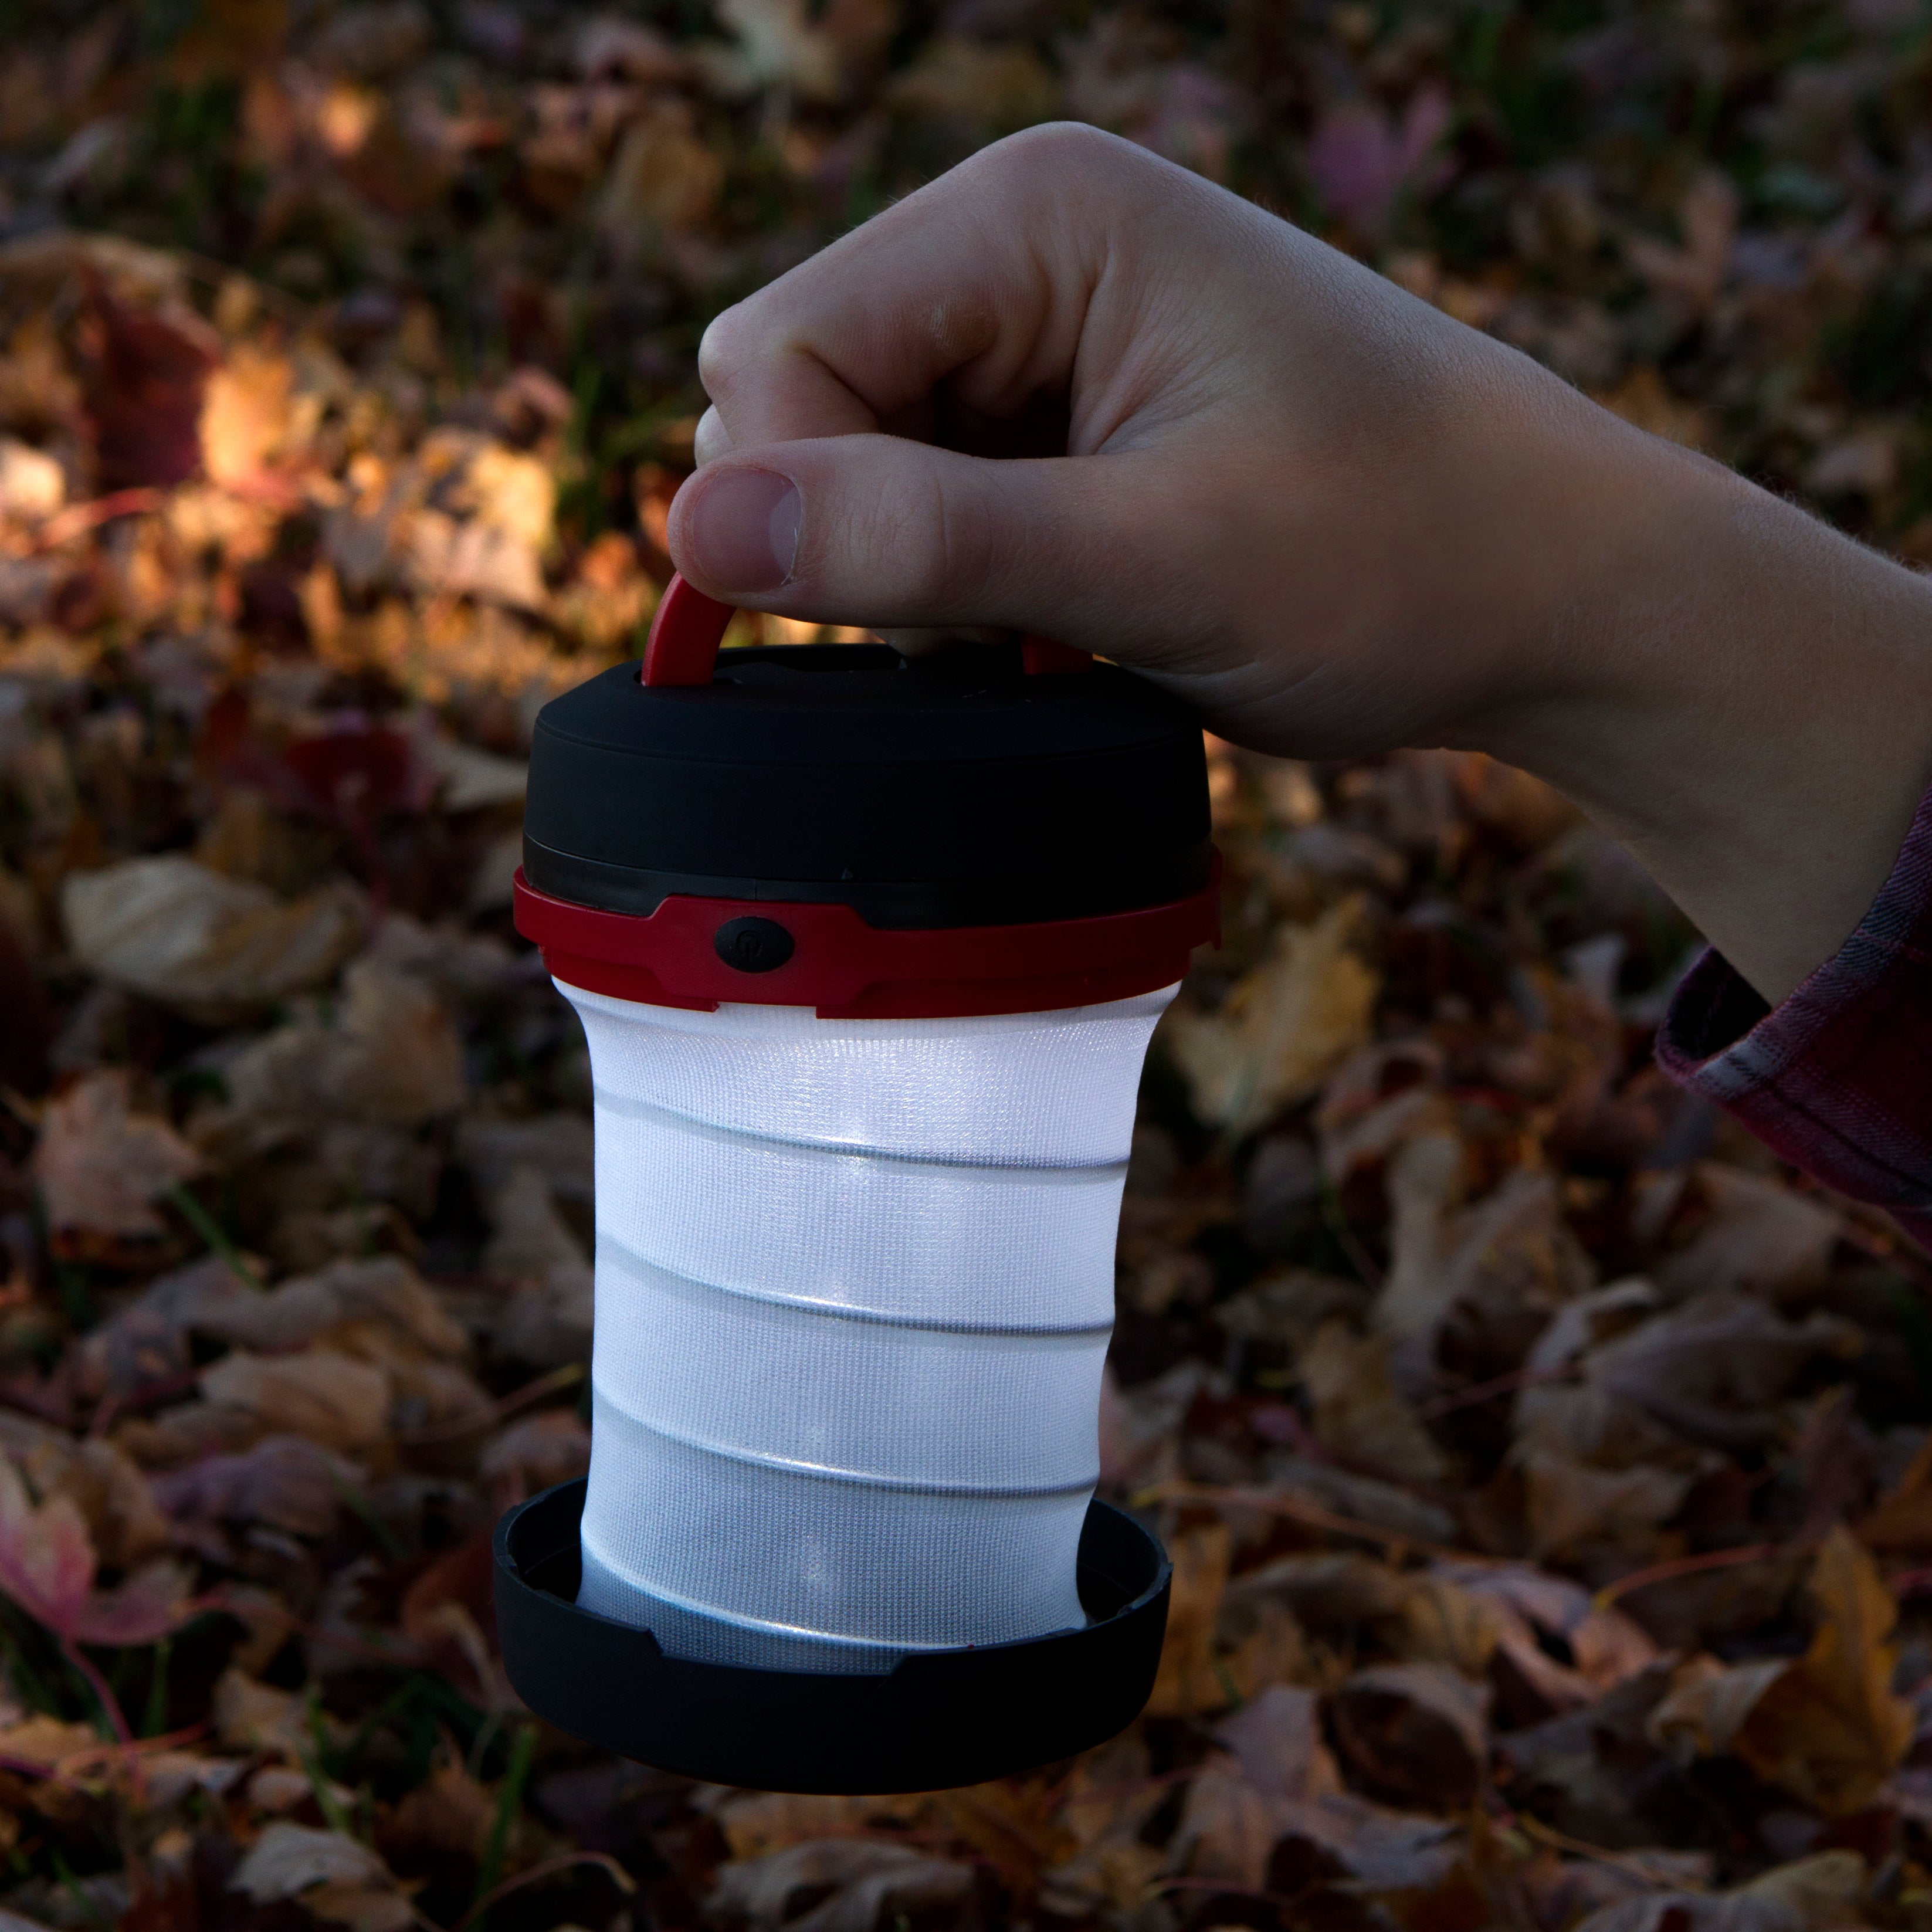 Multi Function Collapsible Camping Lantern 8-PACK in Red